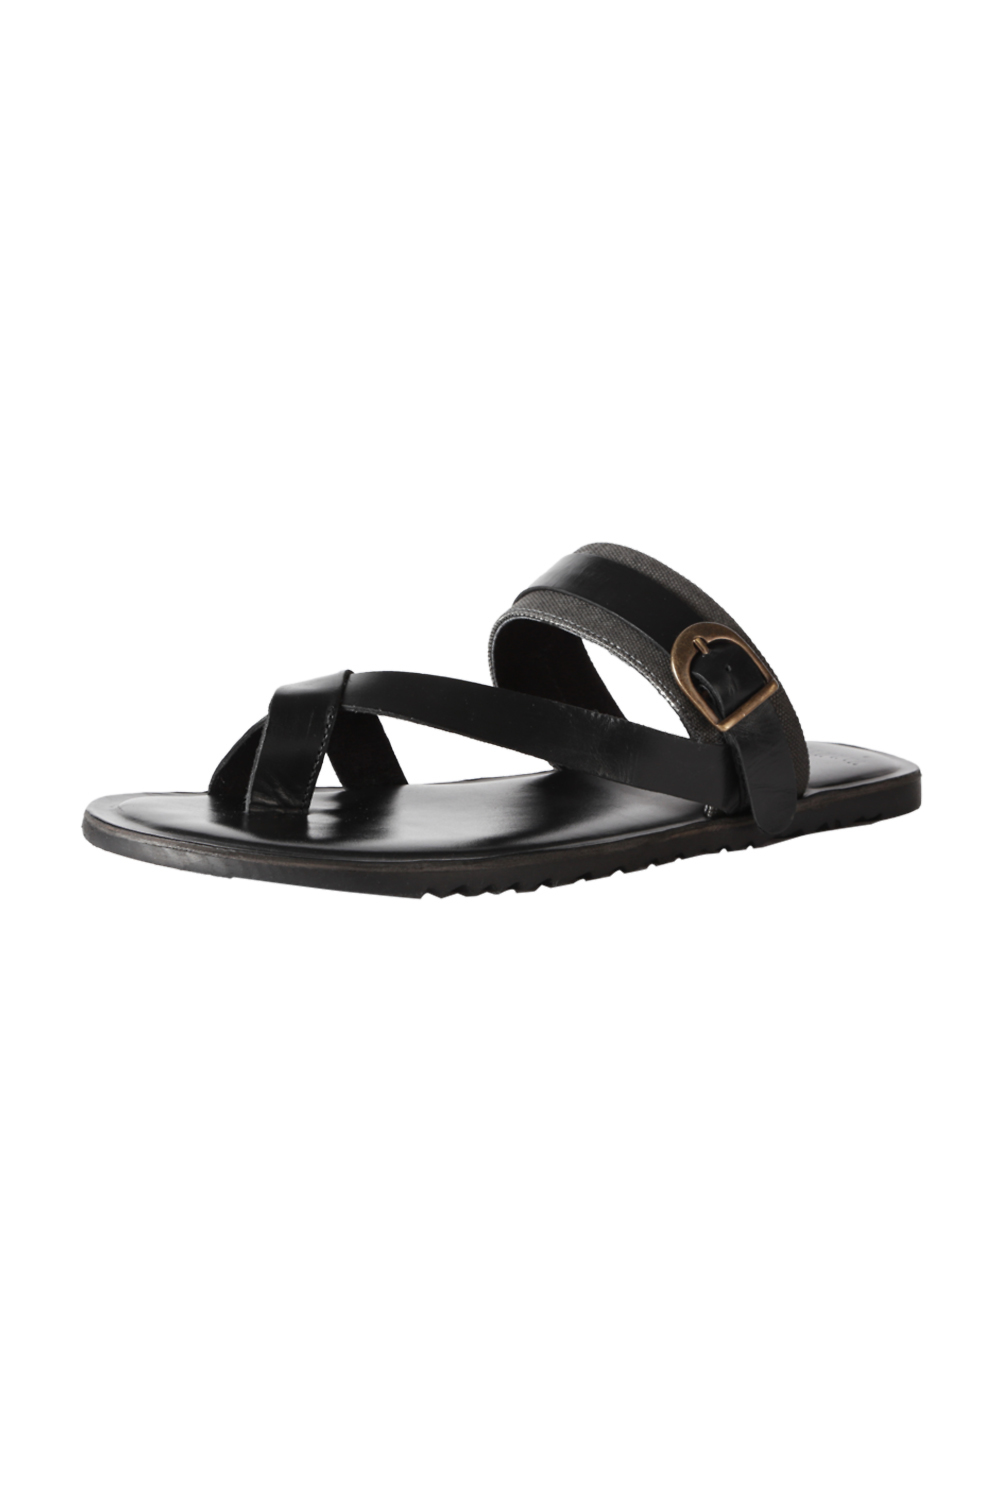 94511abcd3fb Van Heusen Footwear, Van Heusen Black Sandals for Men at Vanheusenindia.com